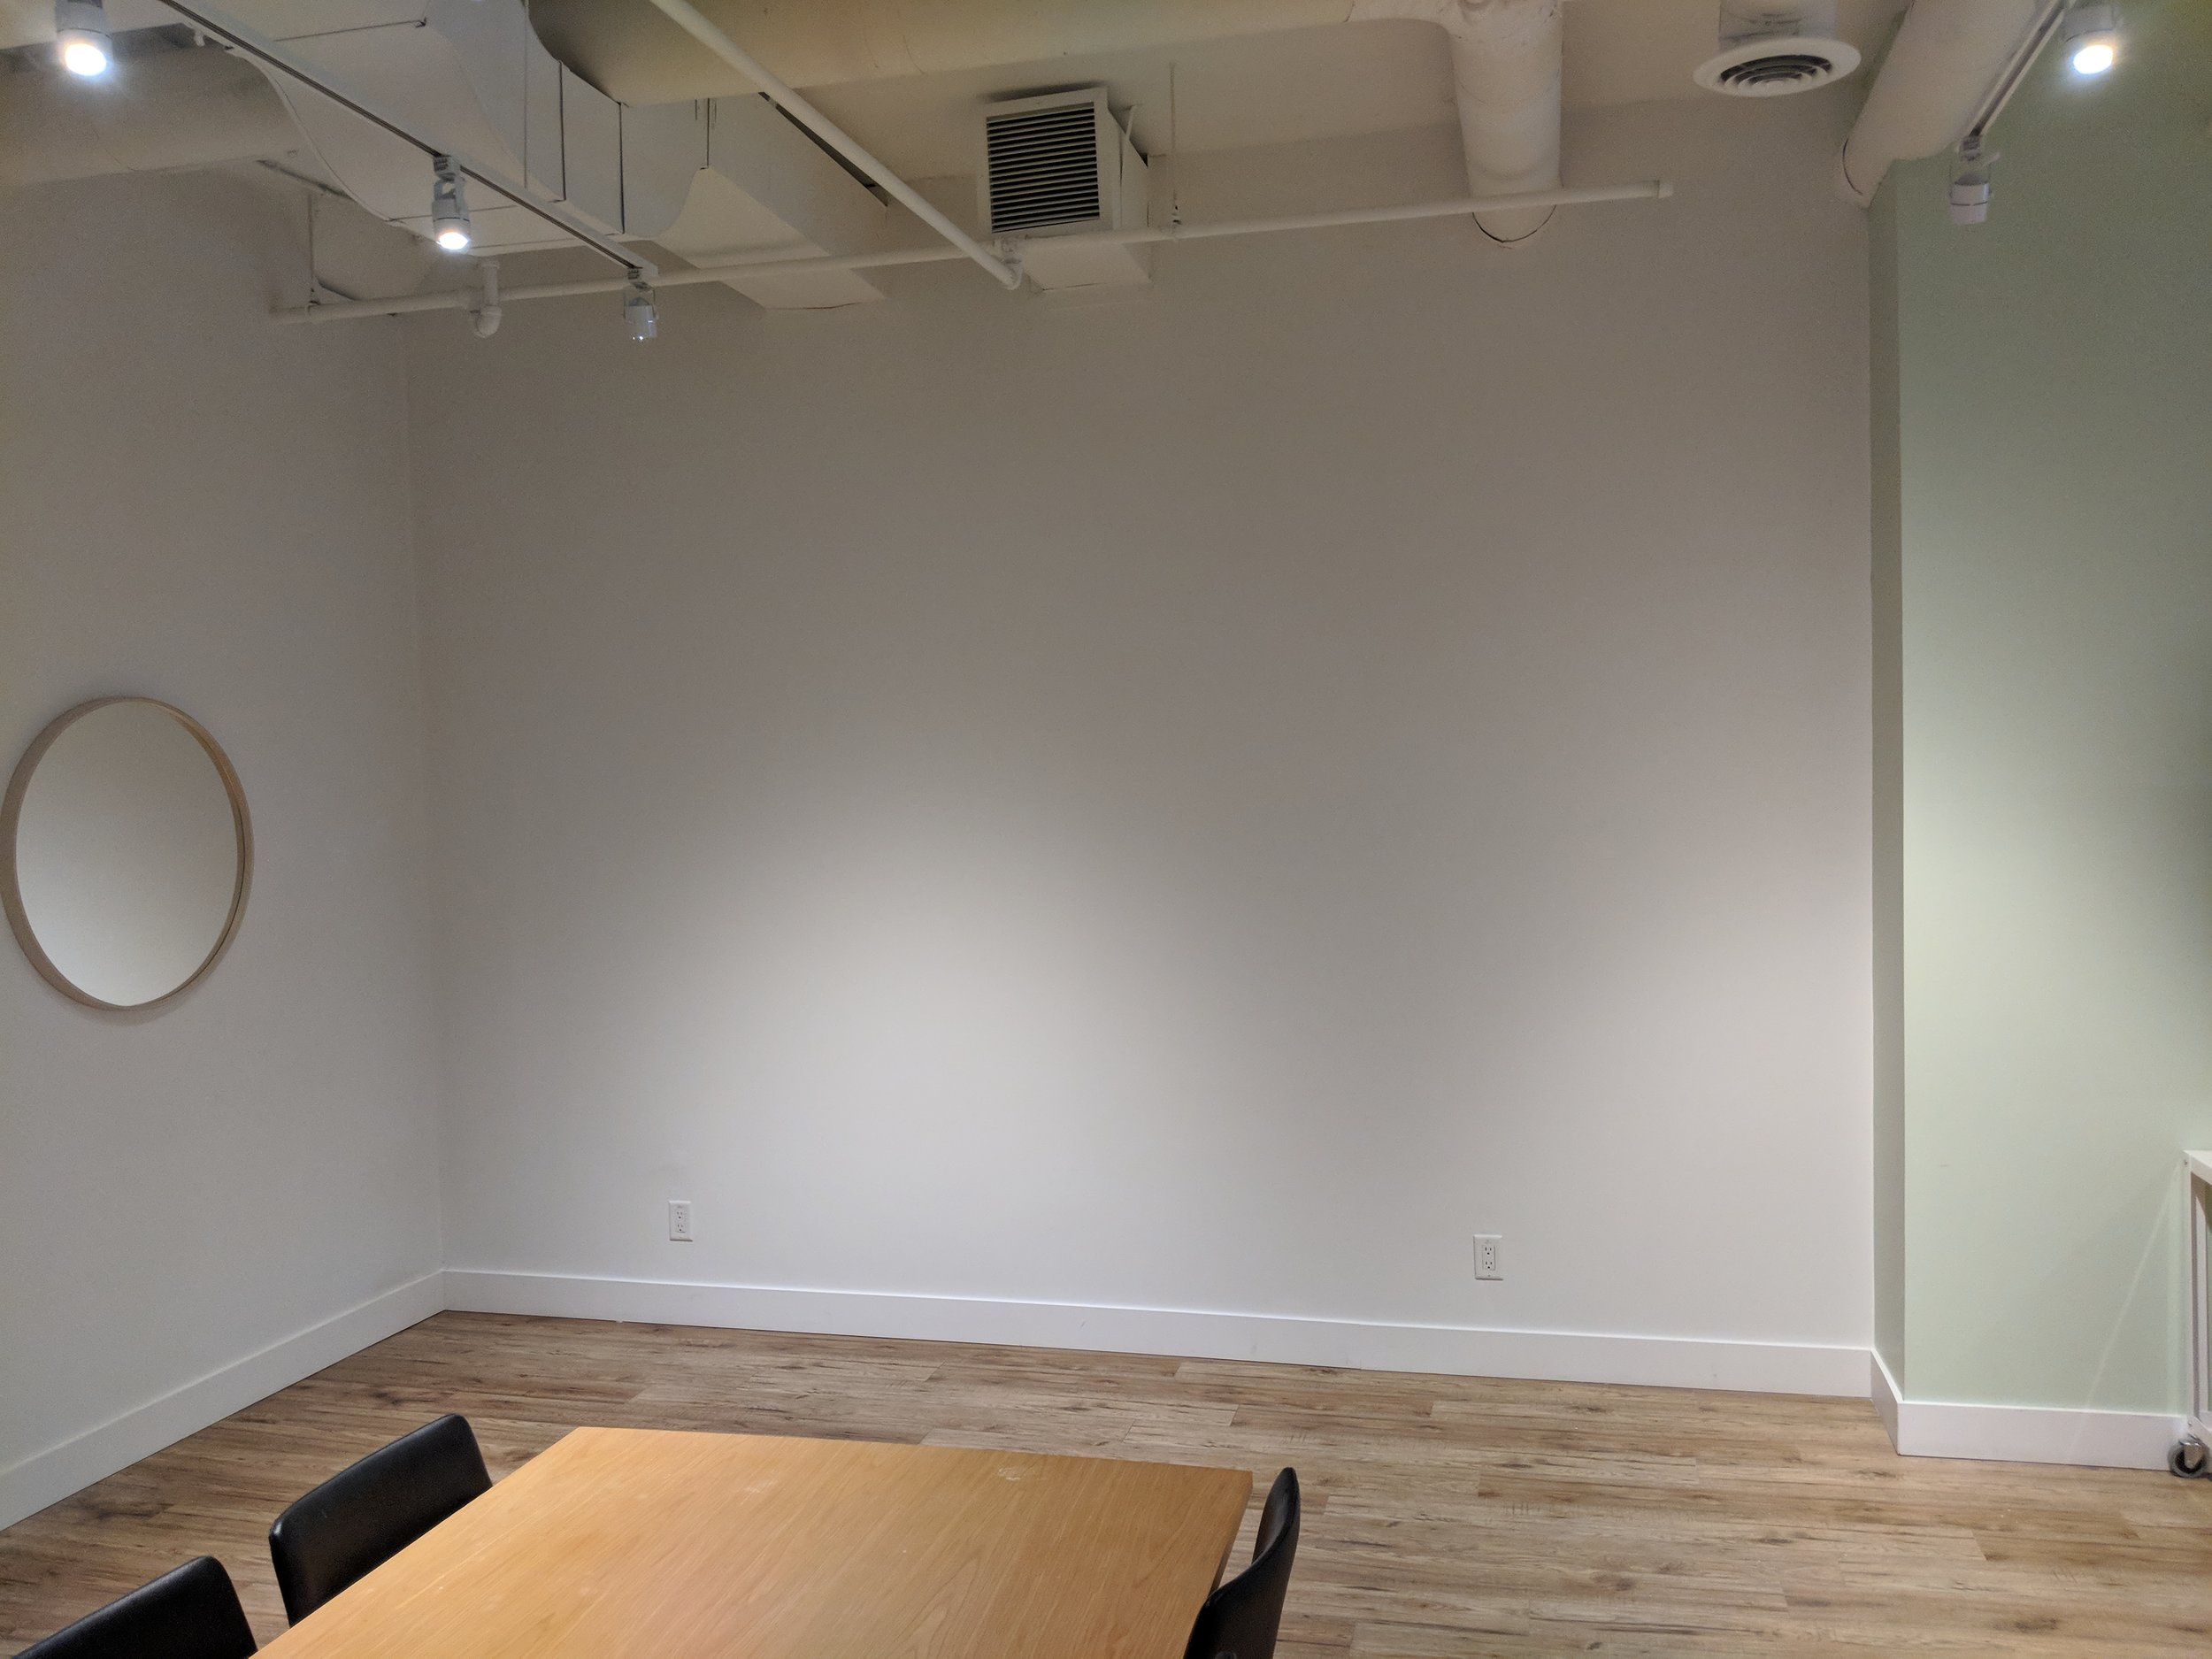 The second room's walls were returned to white.